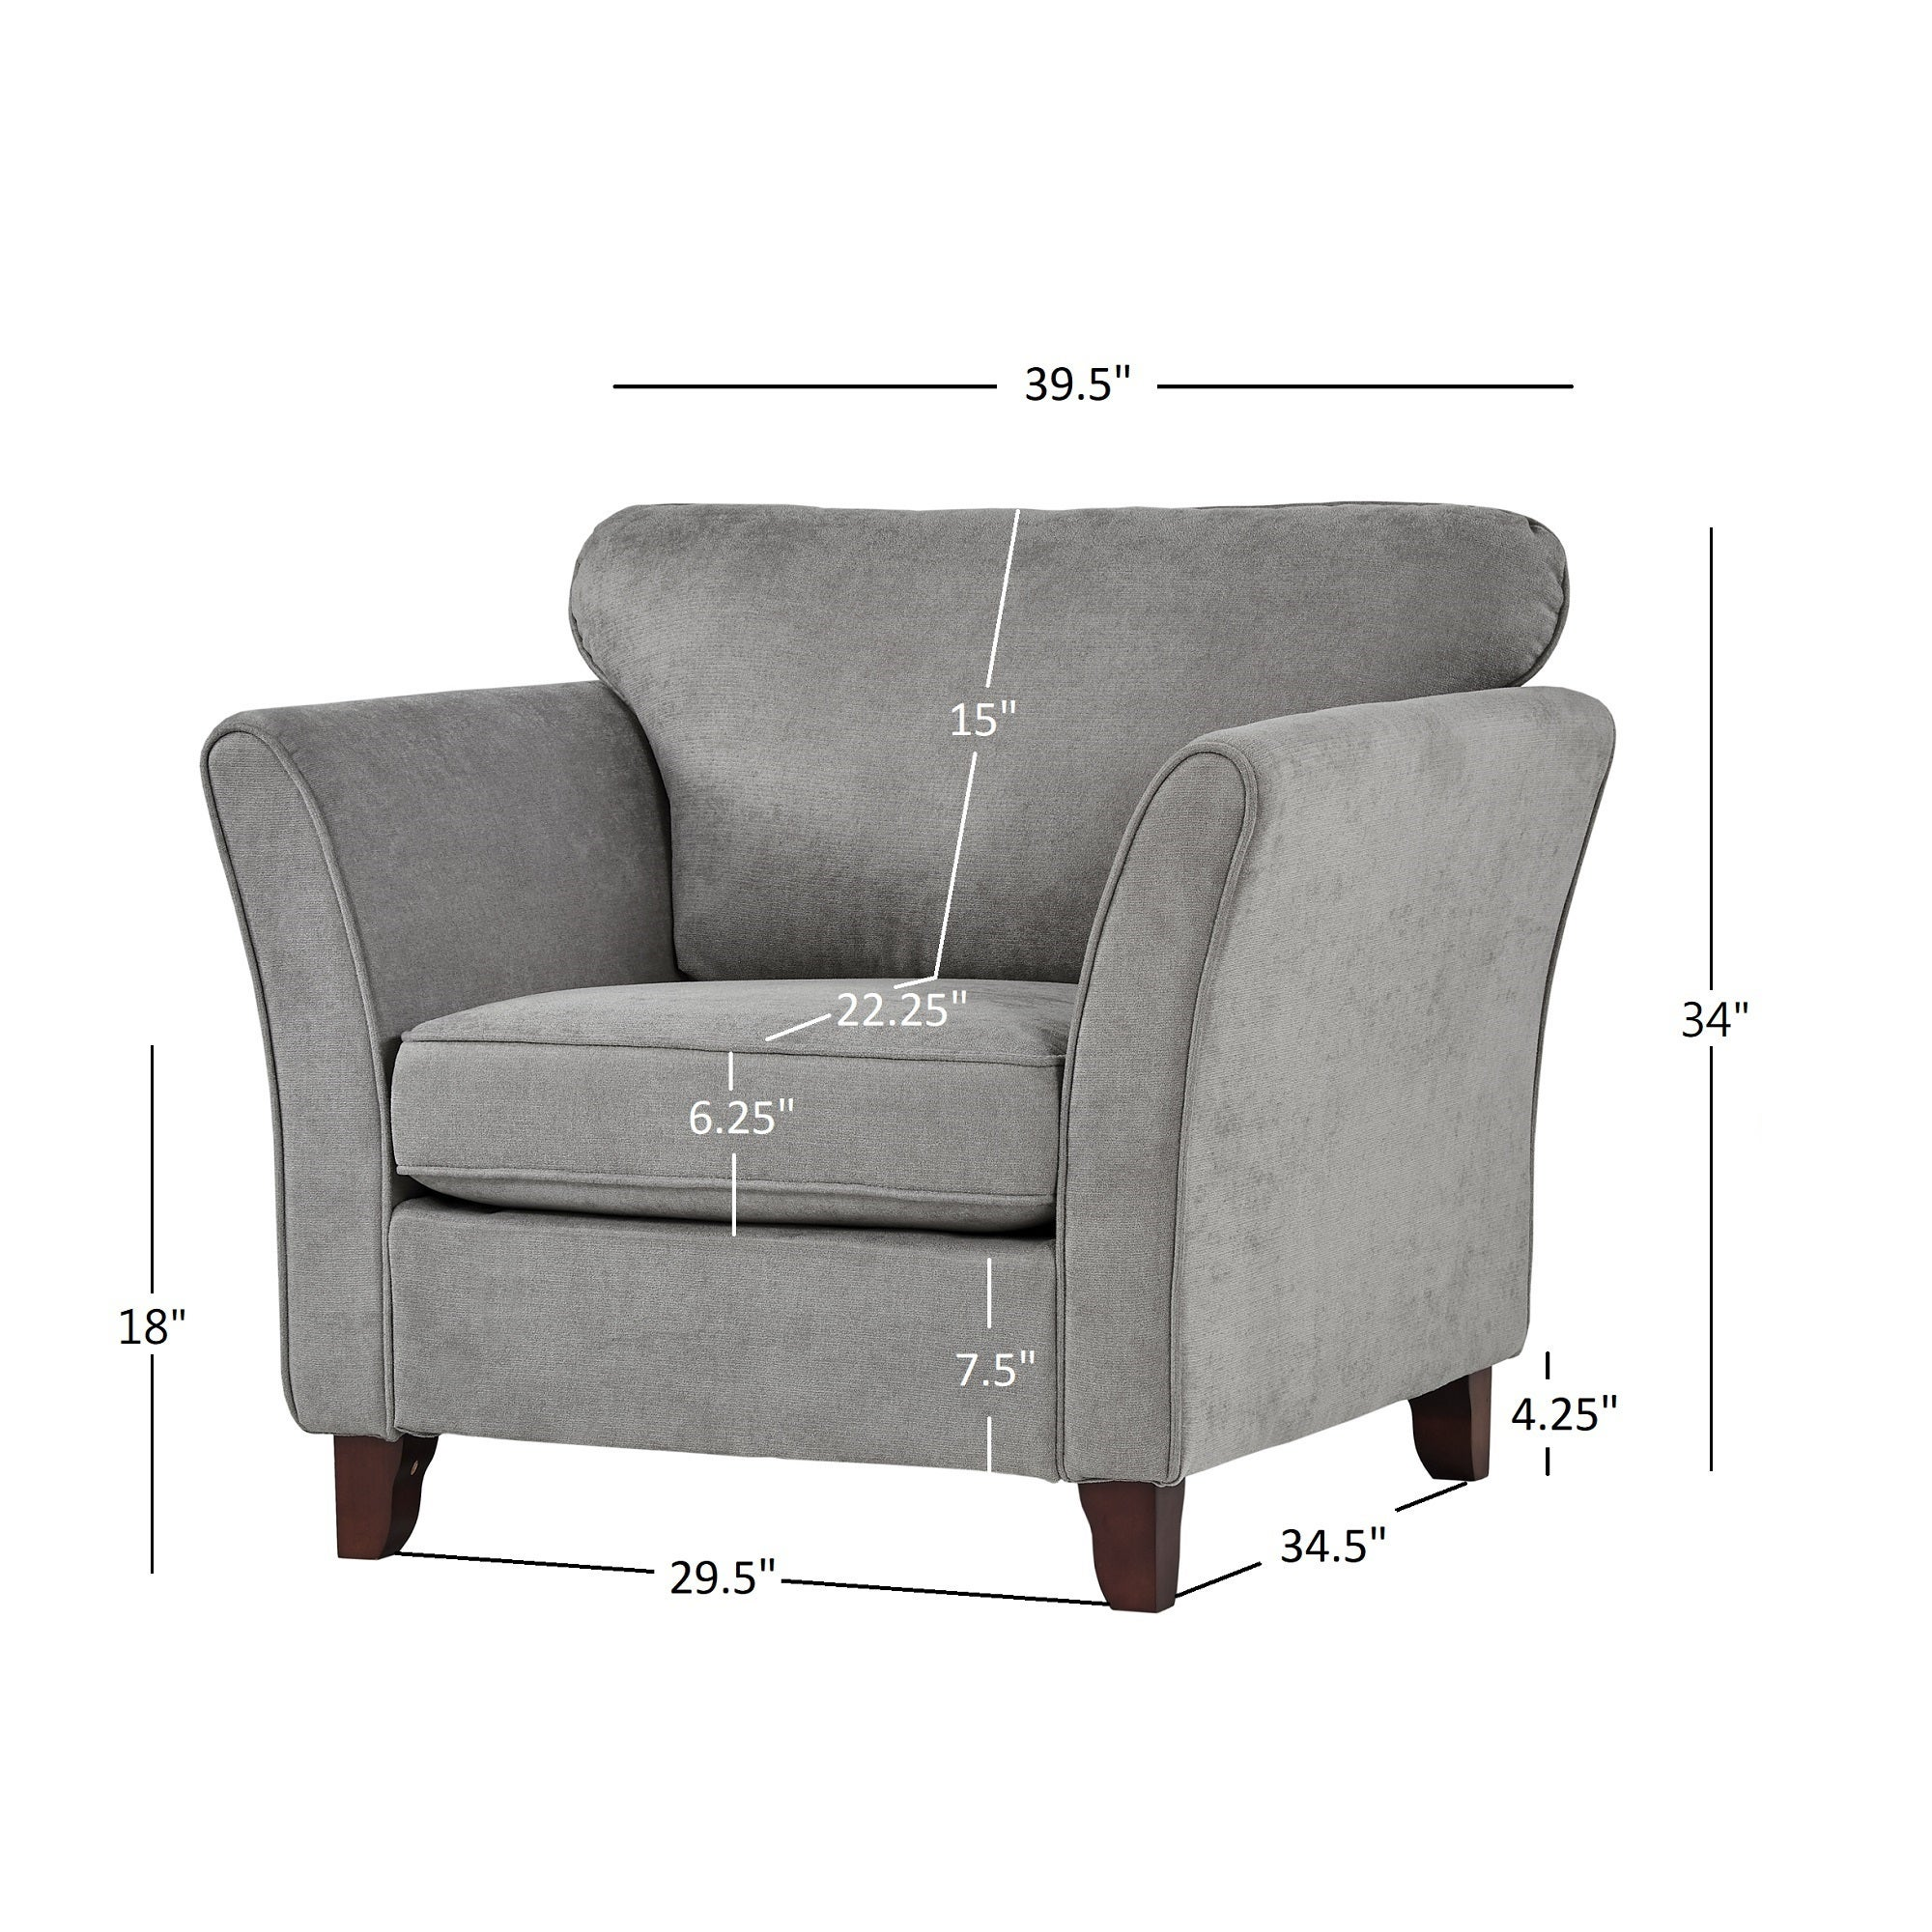 Shop gia low profile living room chair by inspire q classic on sale free shipping today overstock 25444157